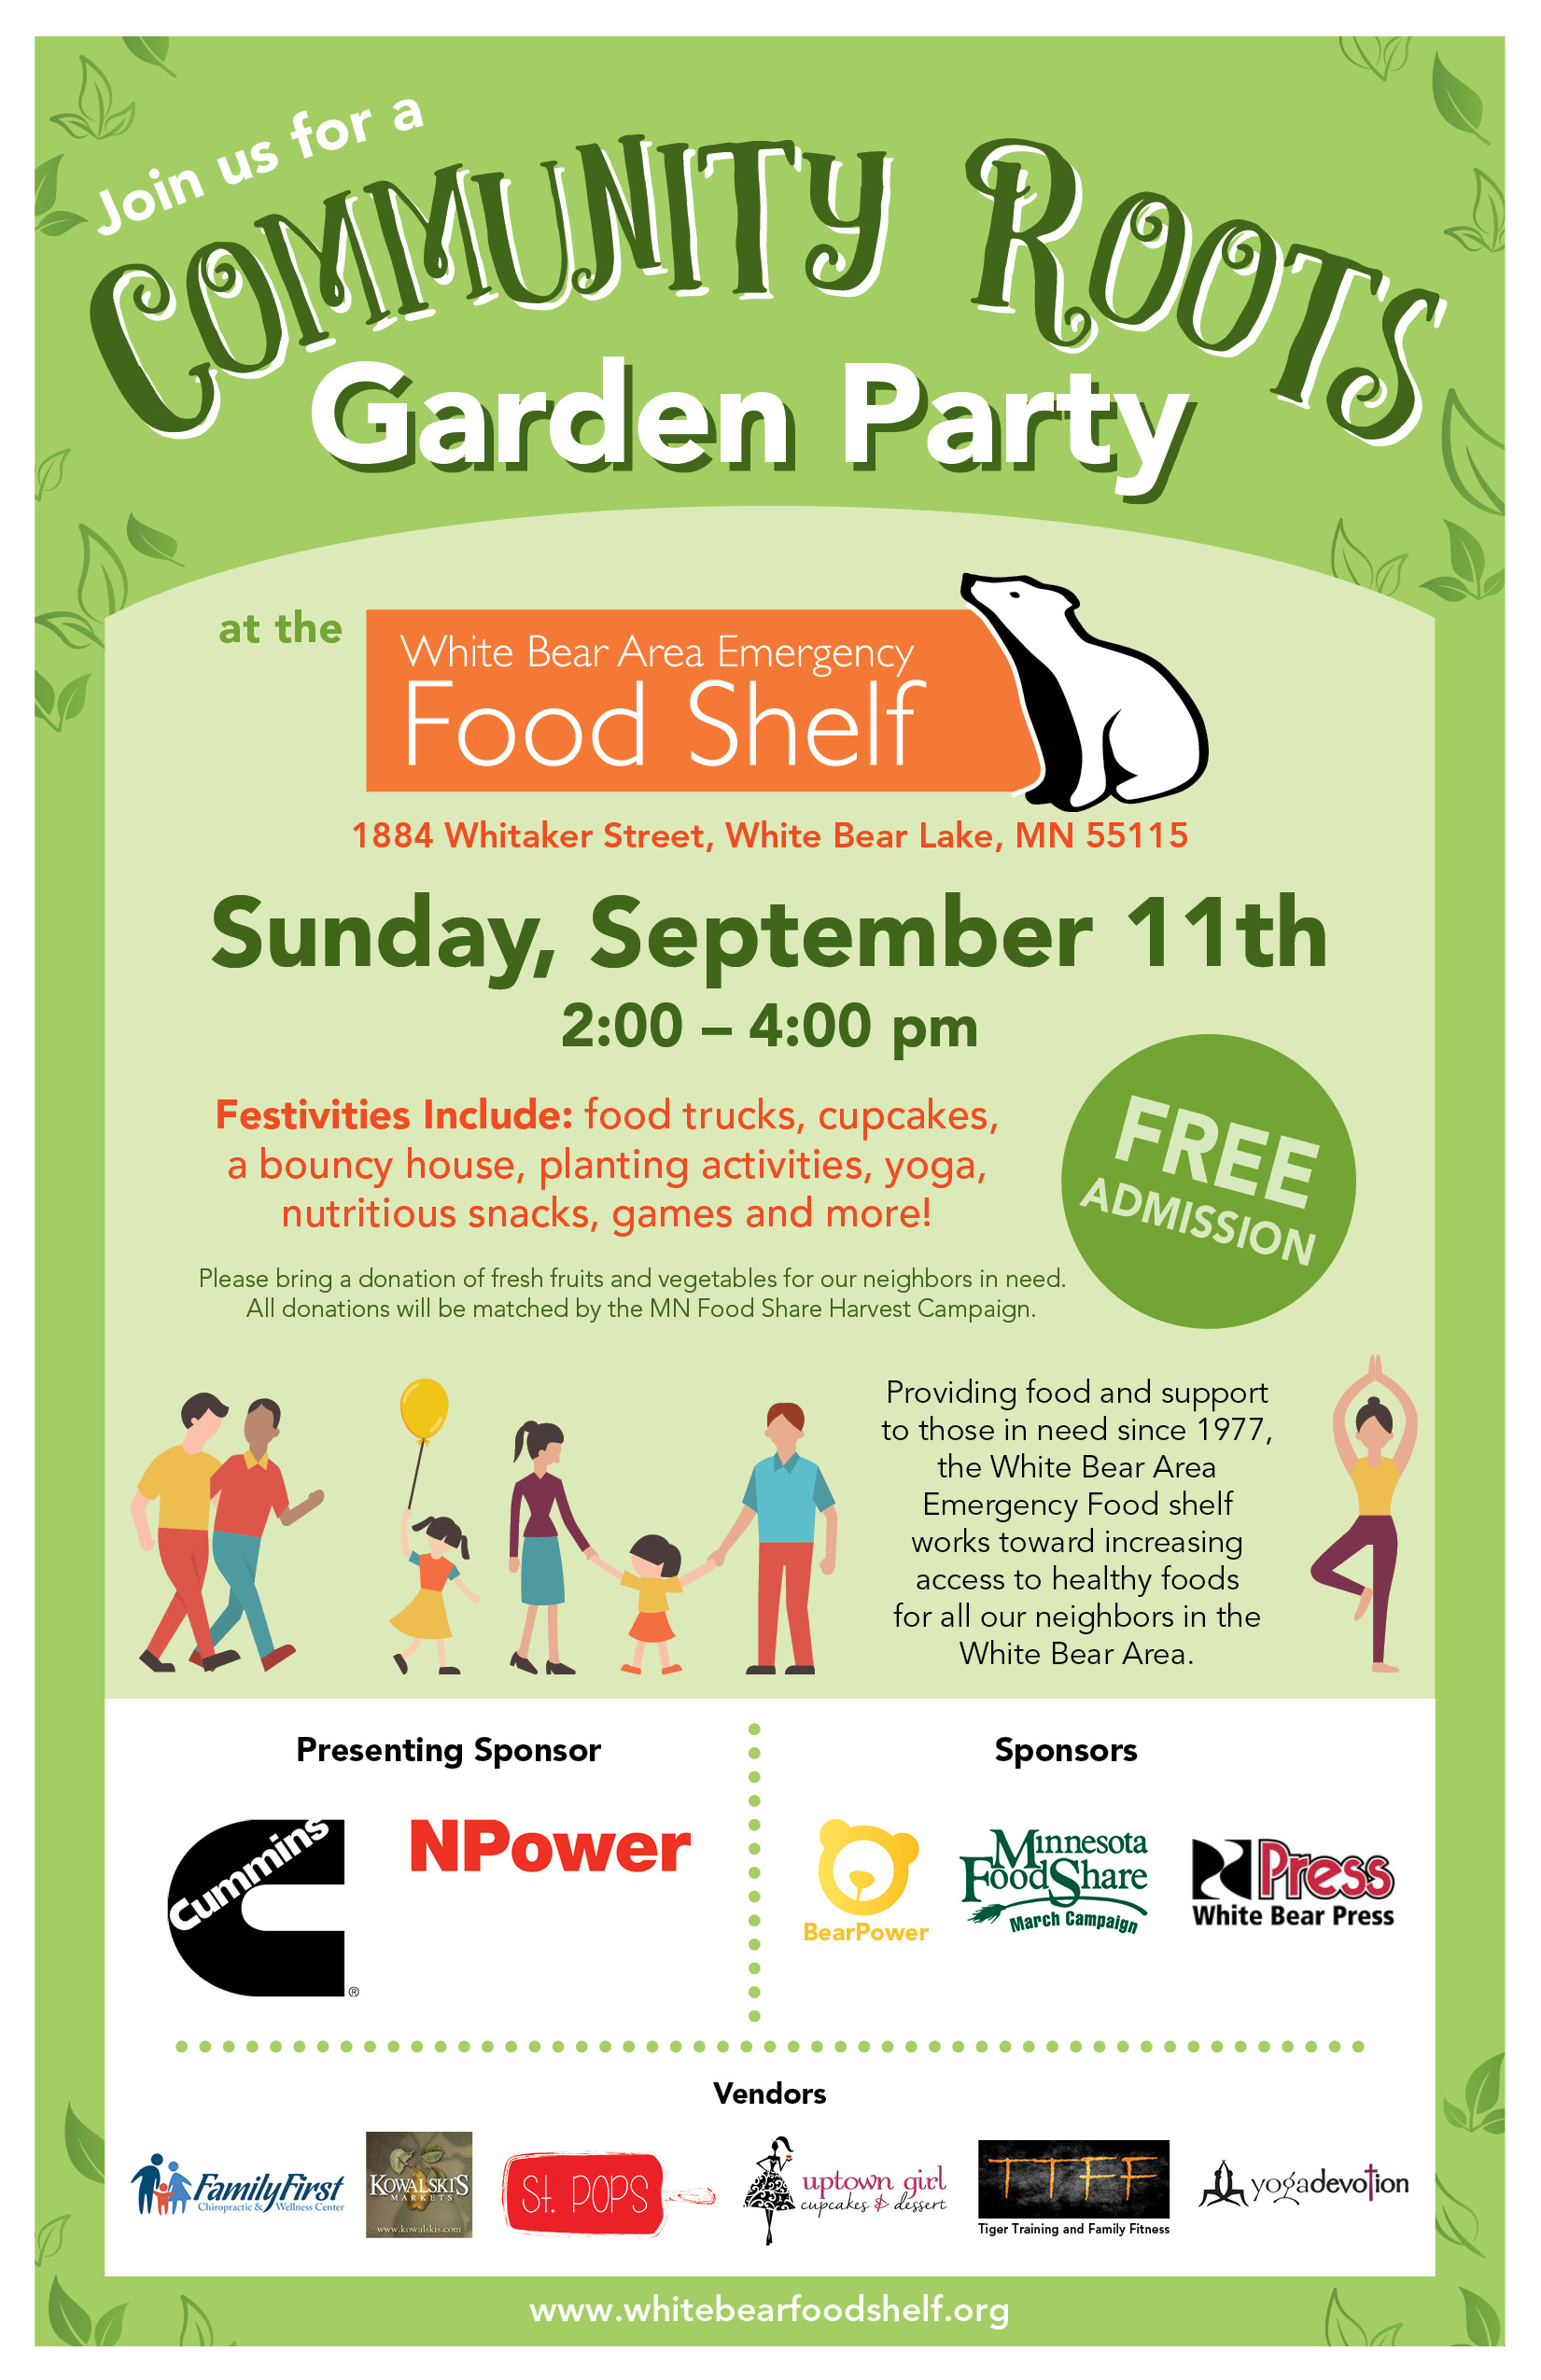 WBFS-garden-party-poster